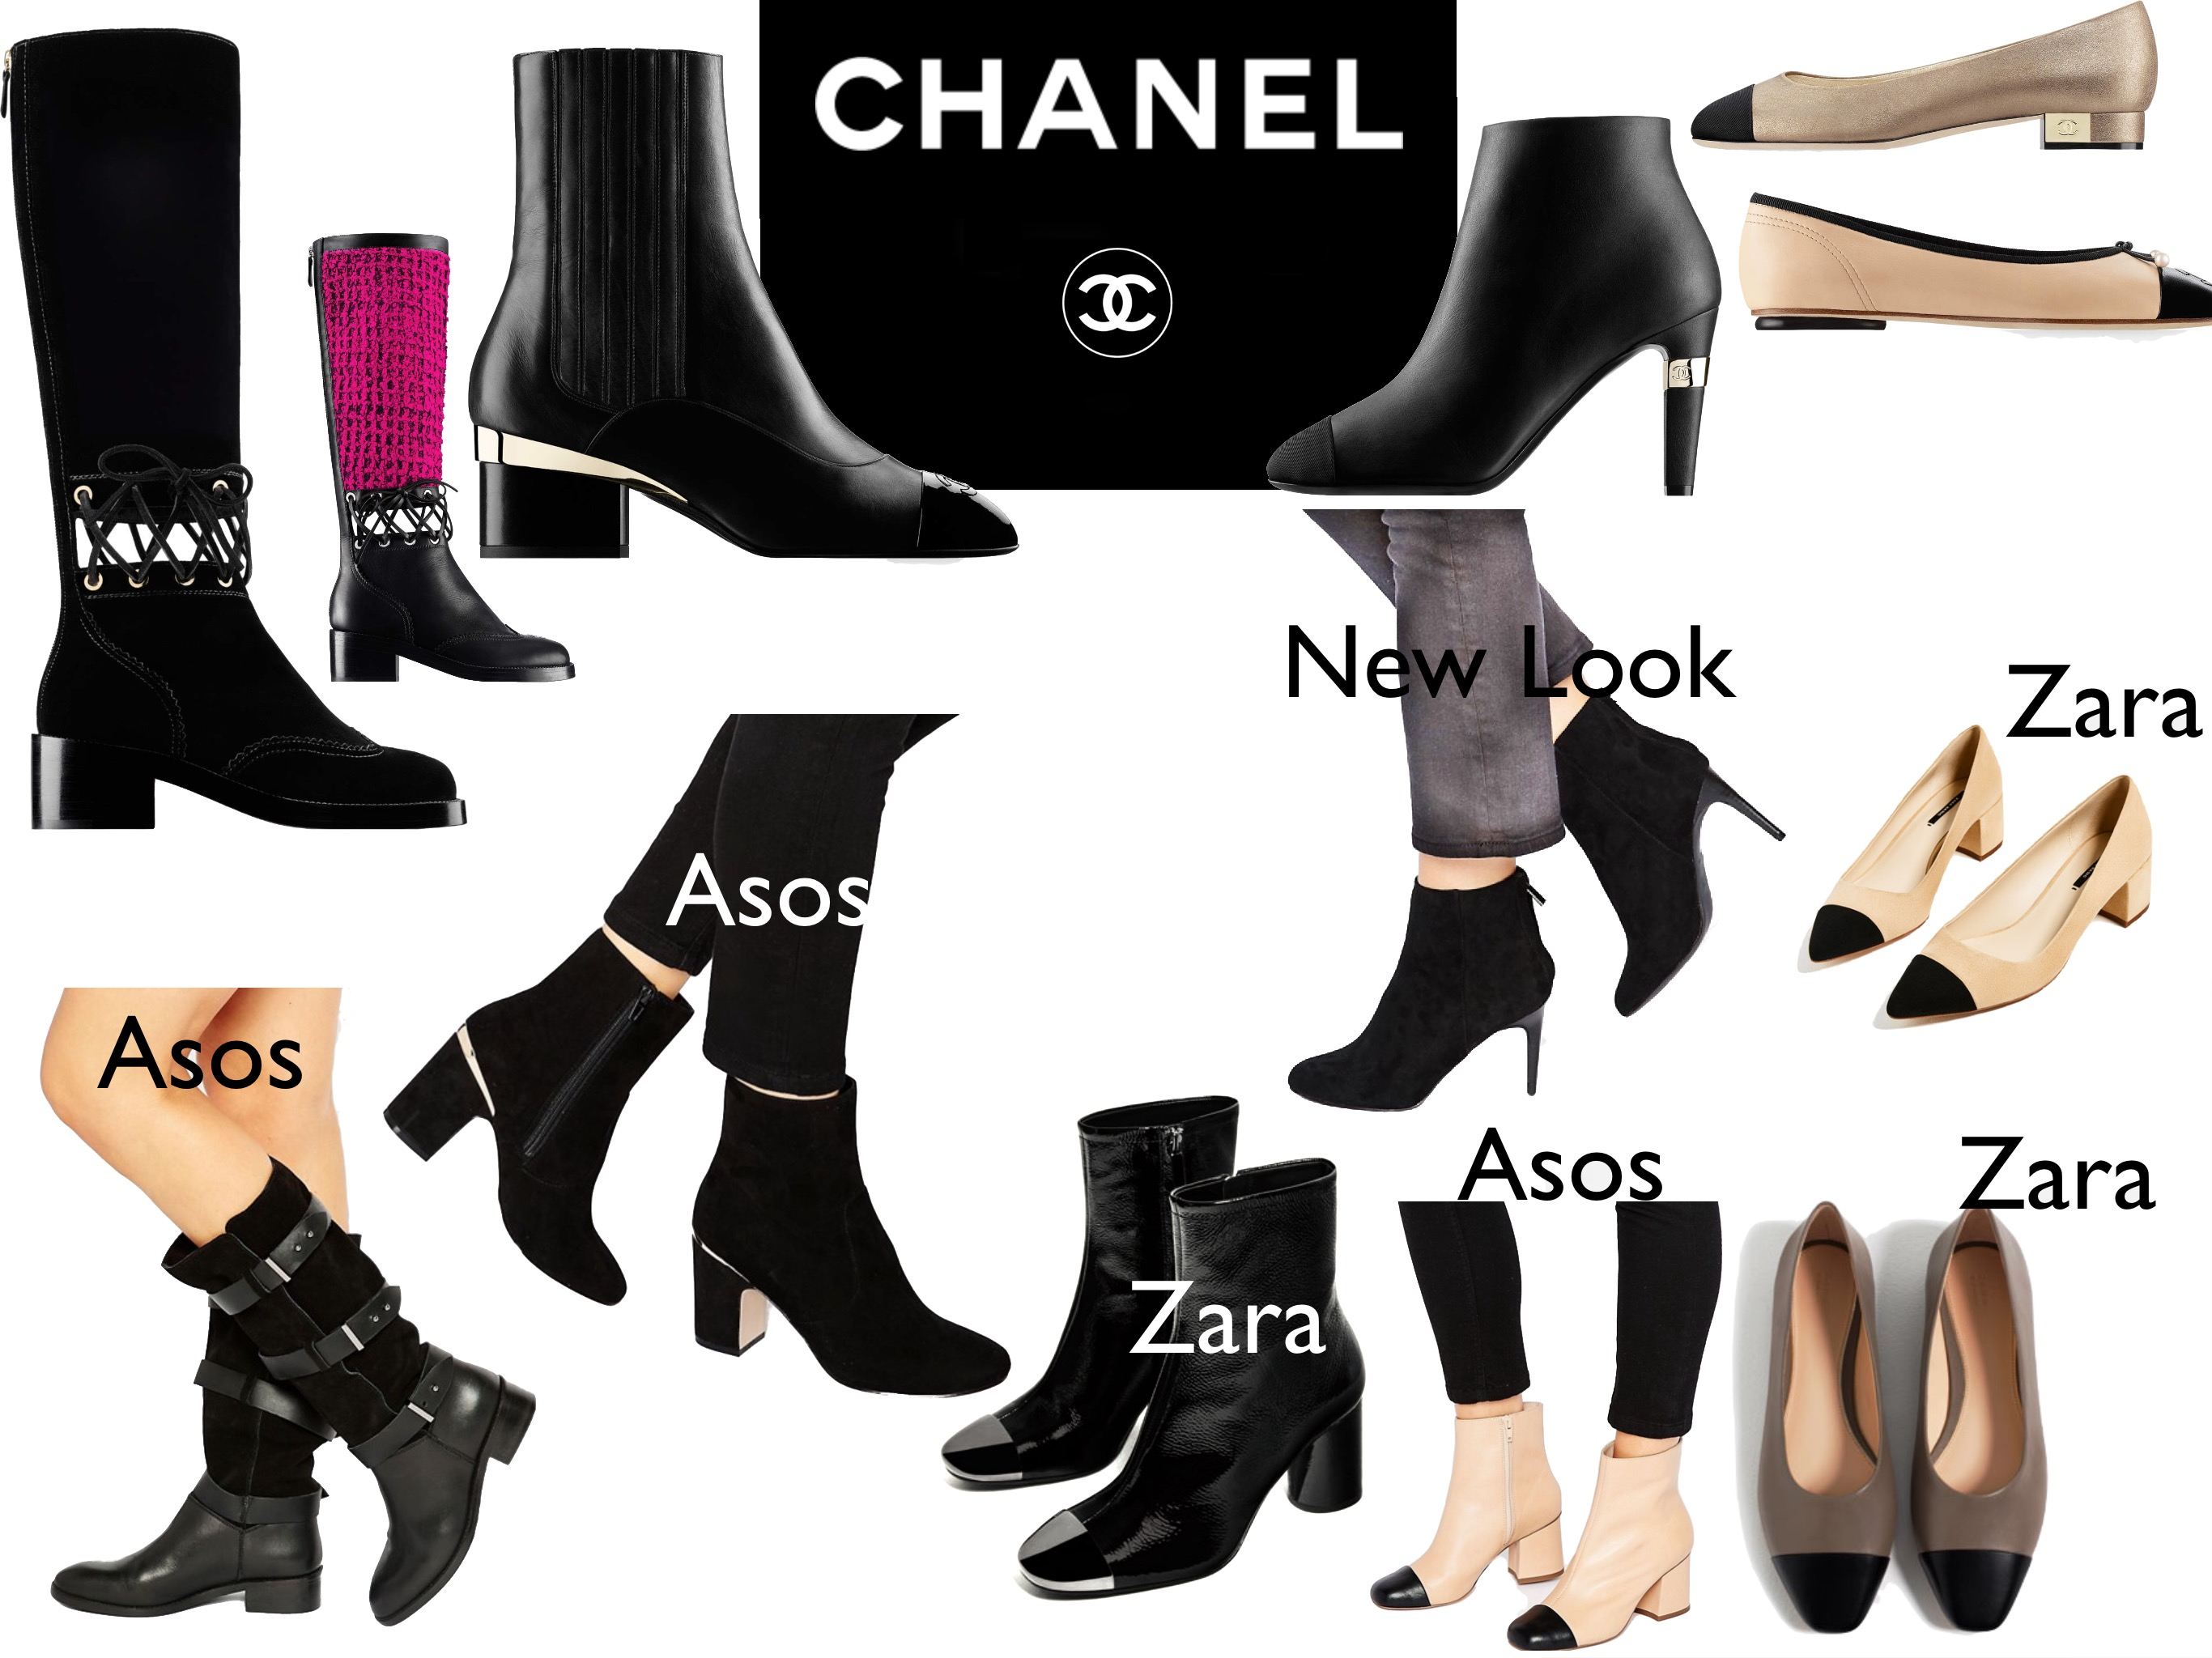 Chanel FW16 inspired outfits: shoes